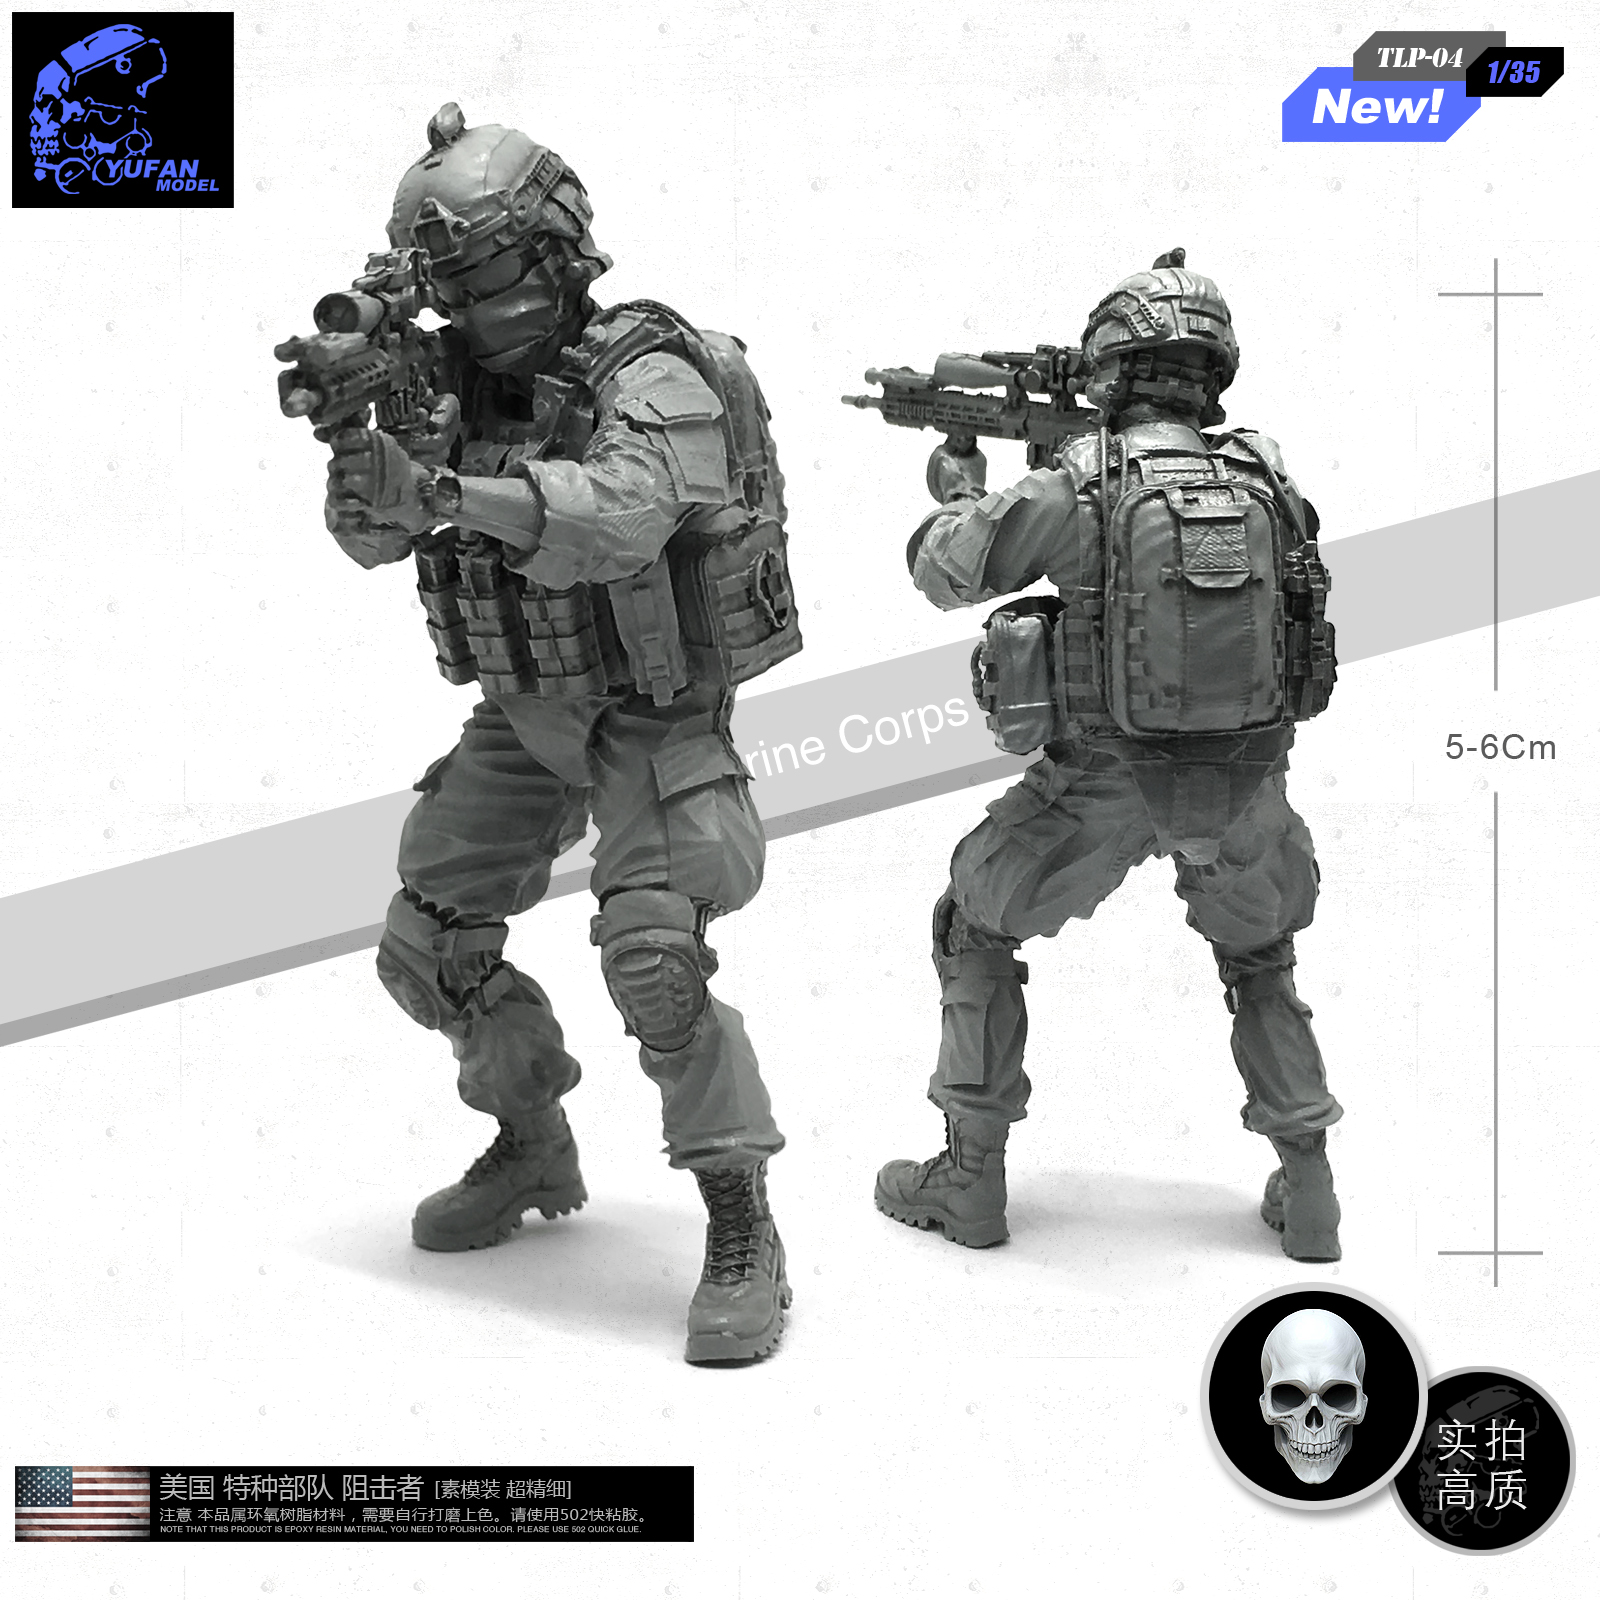 Yufan Model 1/35 Figure Resin Blocker Soldier Model For Us Special Forces DIY Kit GK Model Accessories Unmounted Tlp-04(China)